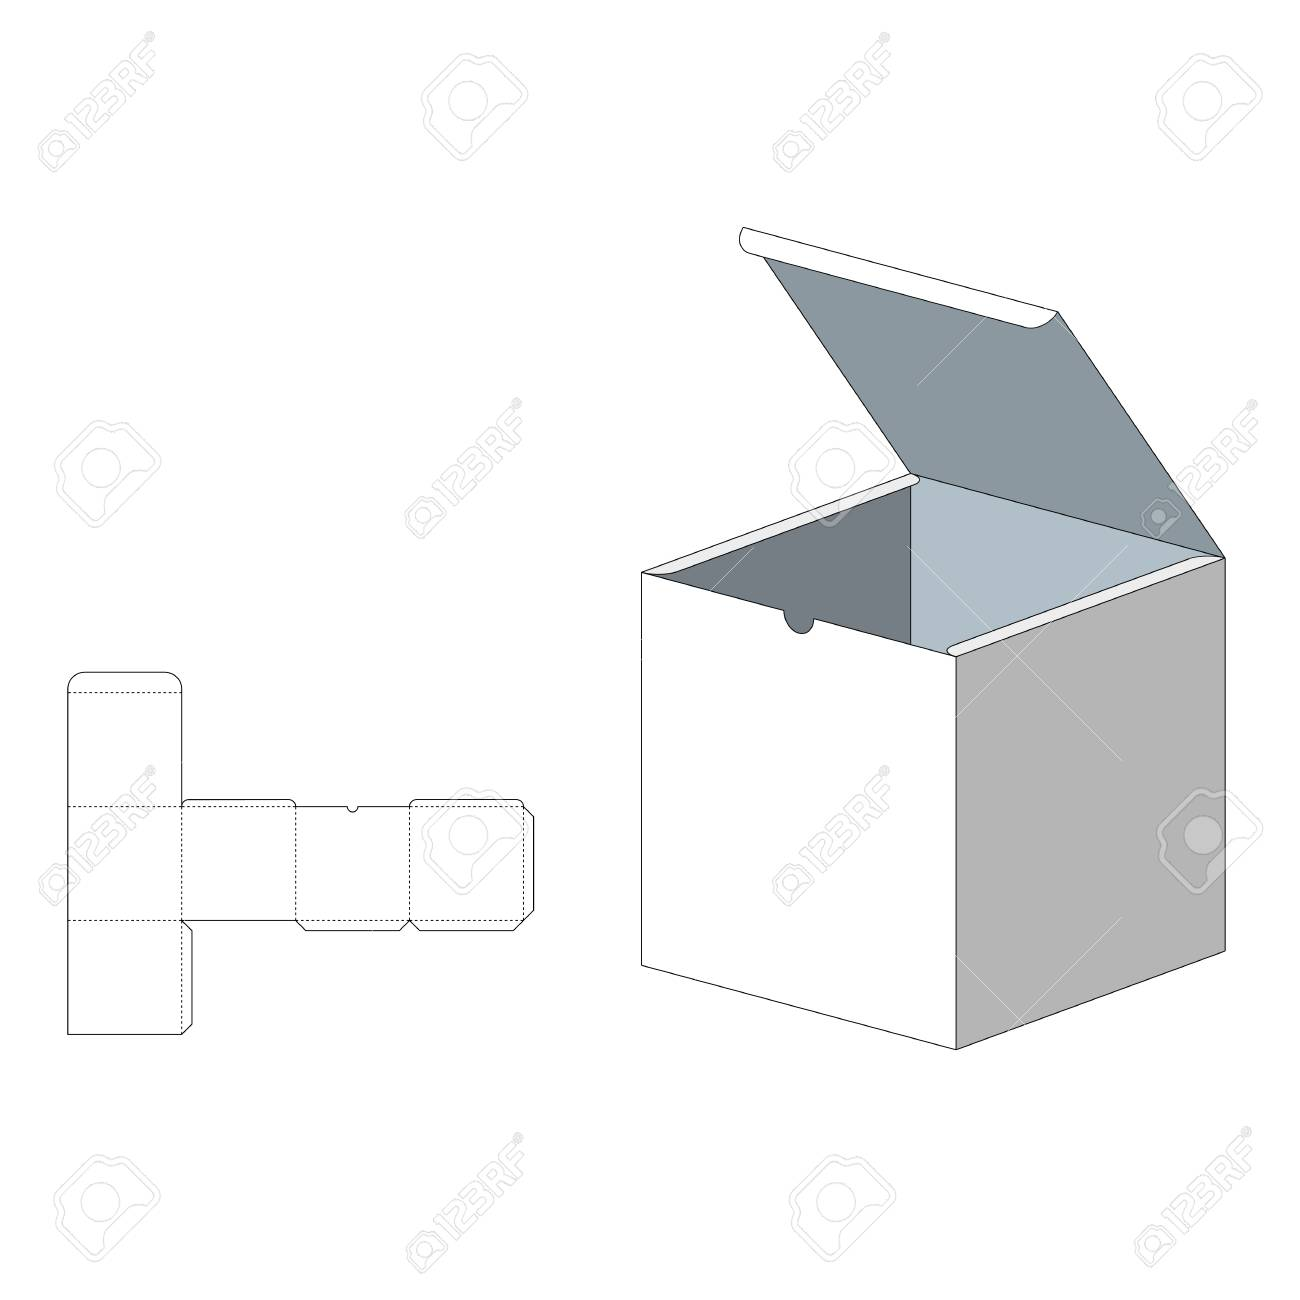 Box With Die Cut Template Packing For Food Gift Or Other Products